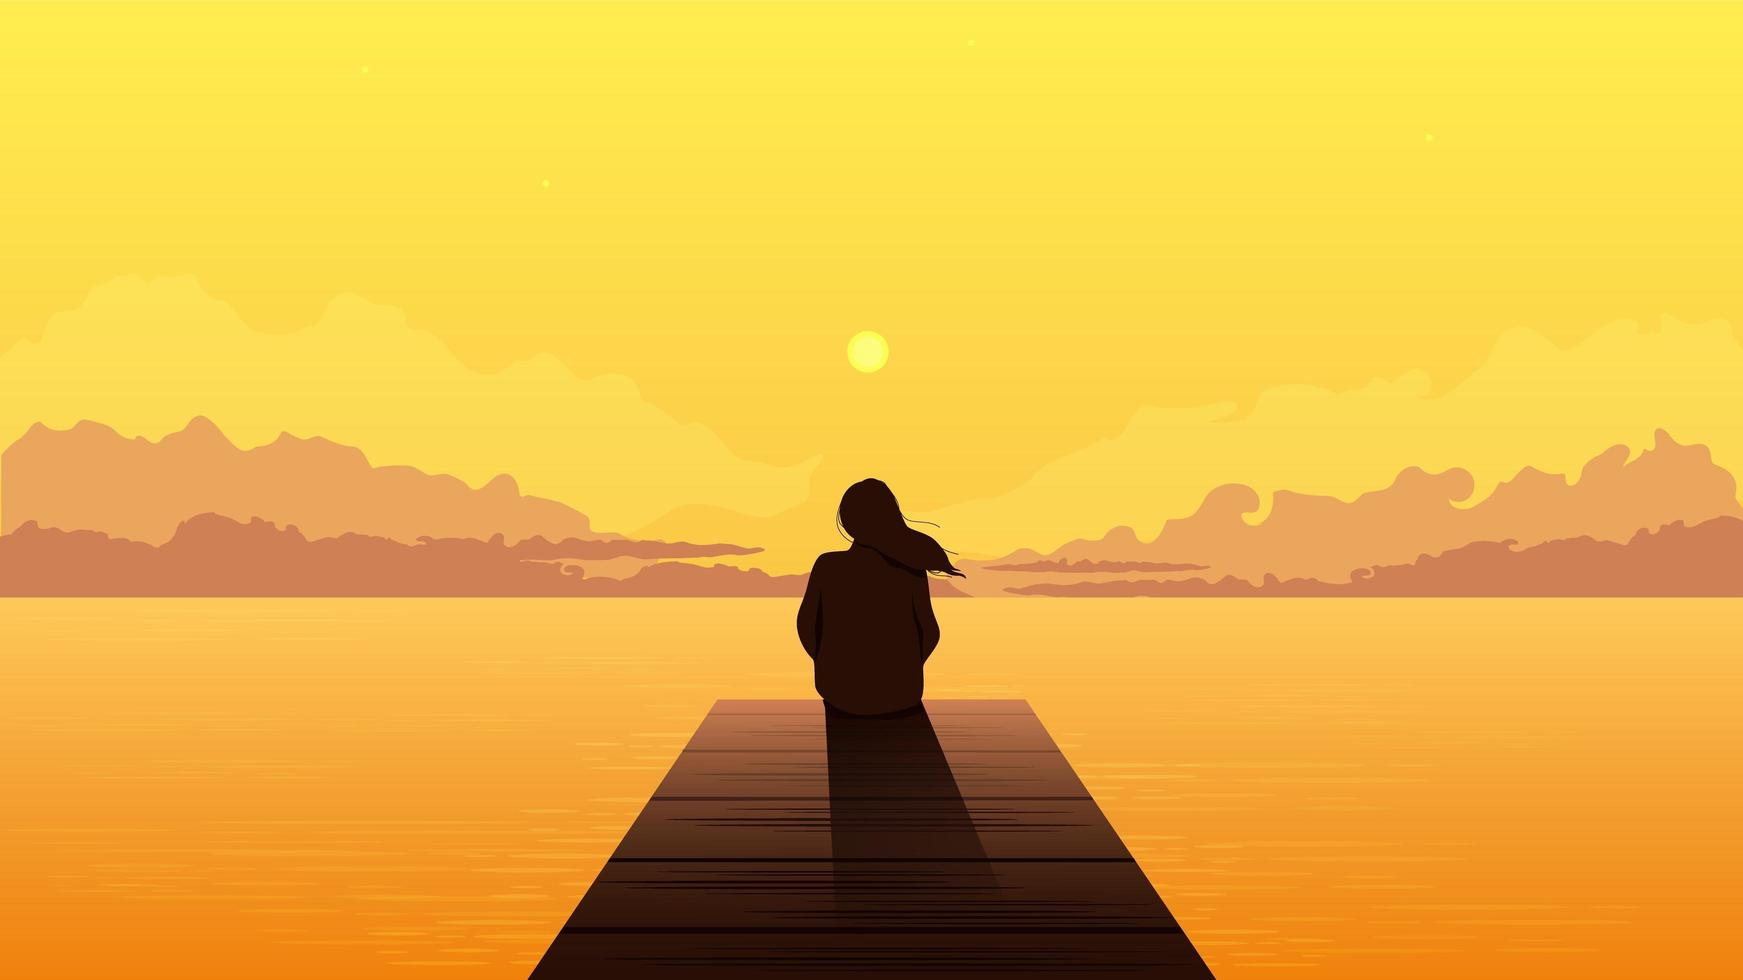 Lonely Girl Silhouette Sitting On Pier At Sunset Download Free Vectors Clipart Graphics Vector Art